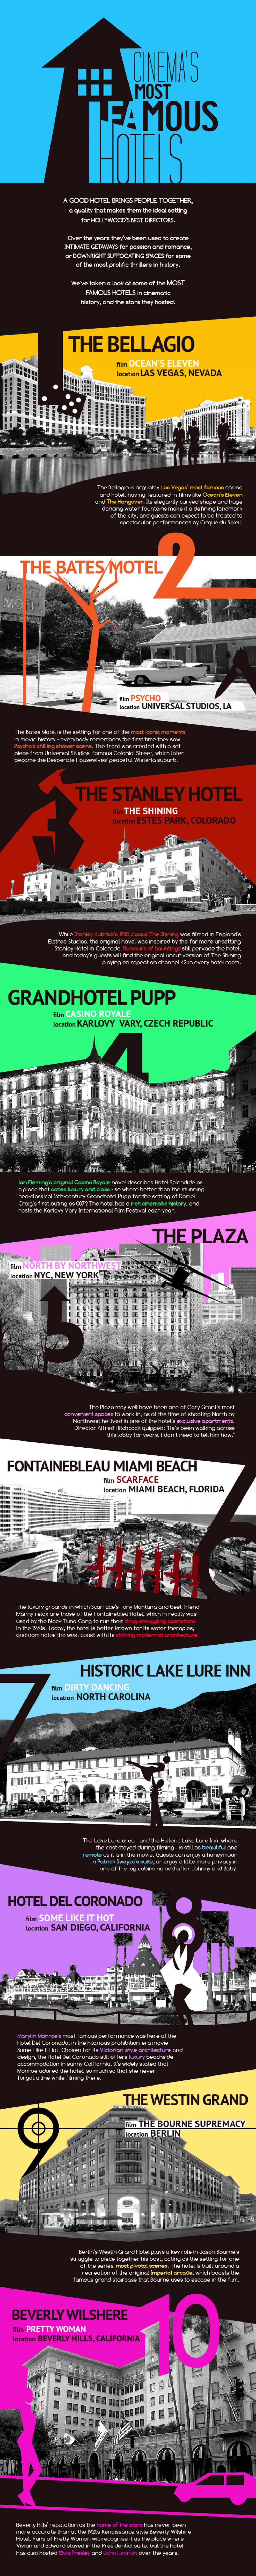 Cinema's Most Famous Hotels Infographic